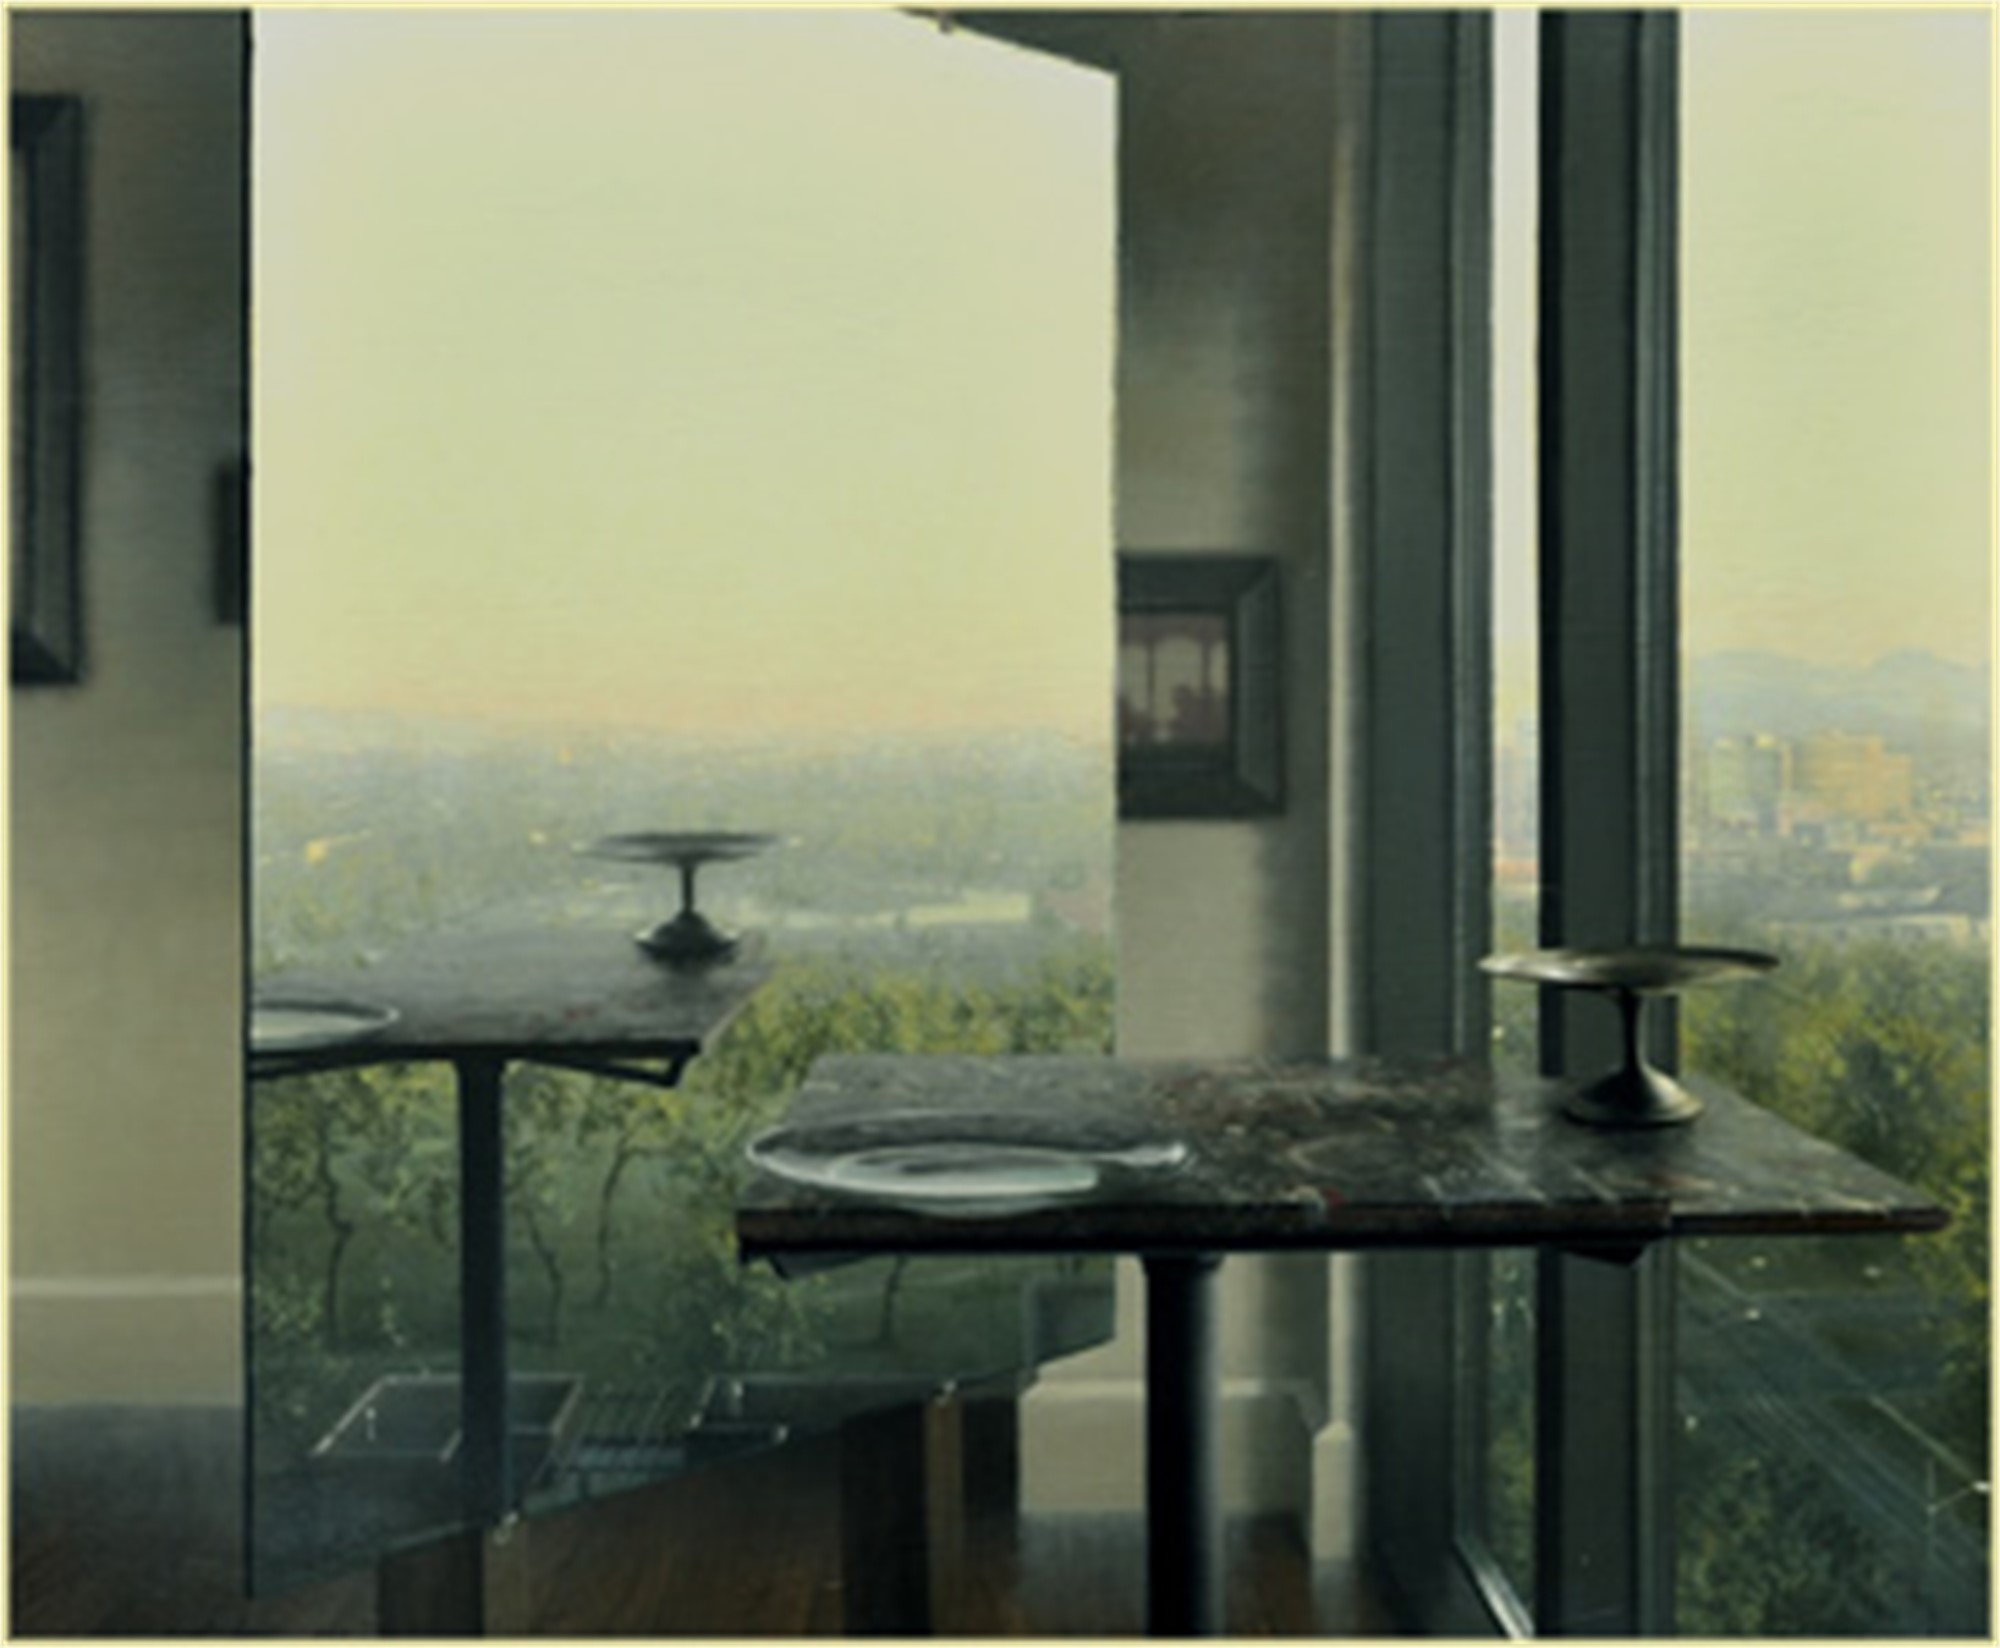 Studio with View of the City by Daniel Sprick